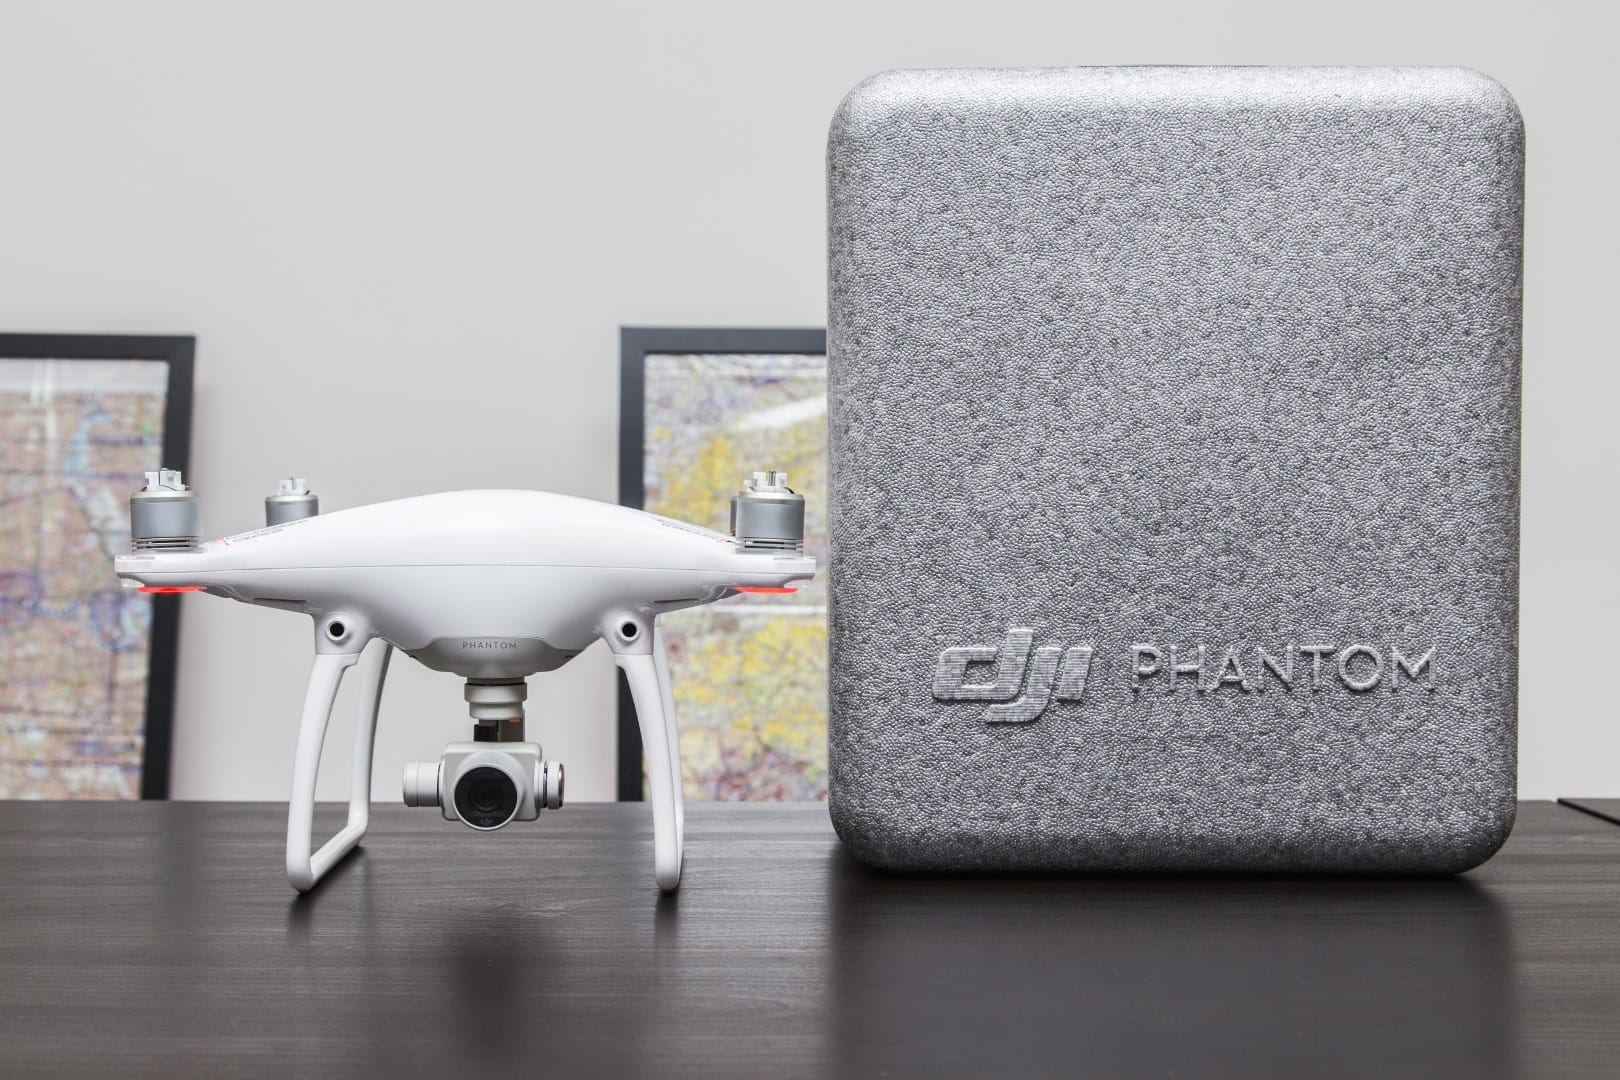 Phantom 4 with case